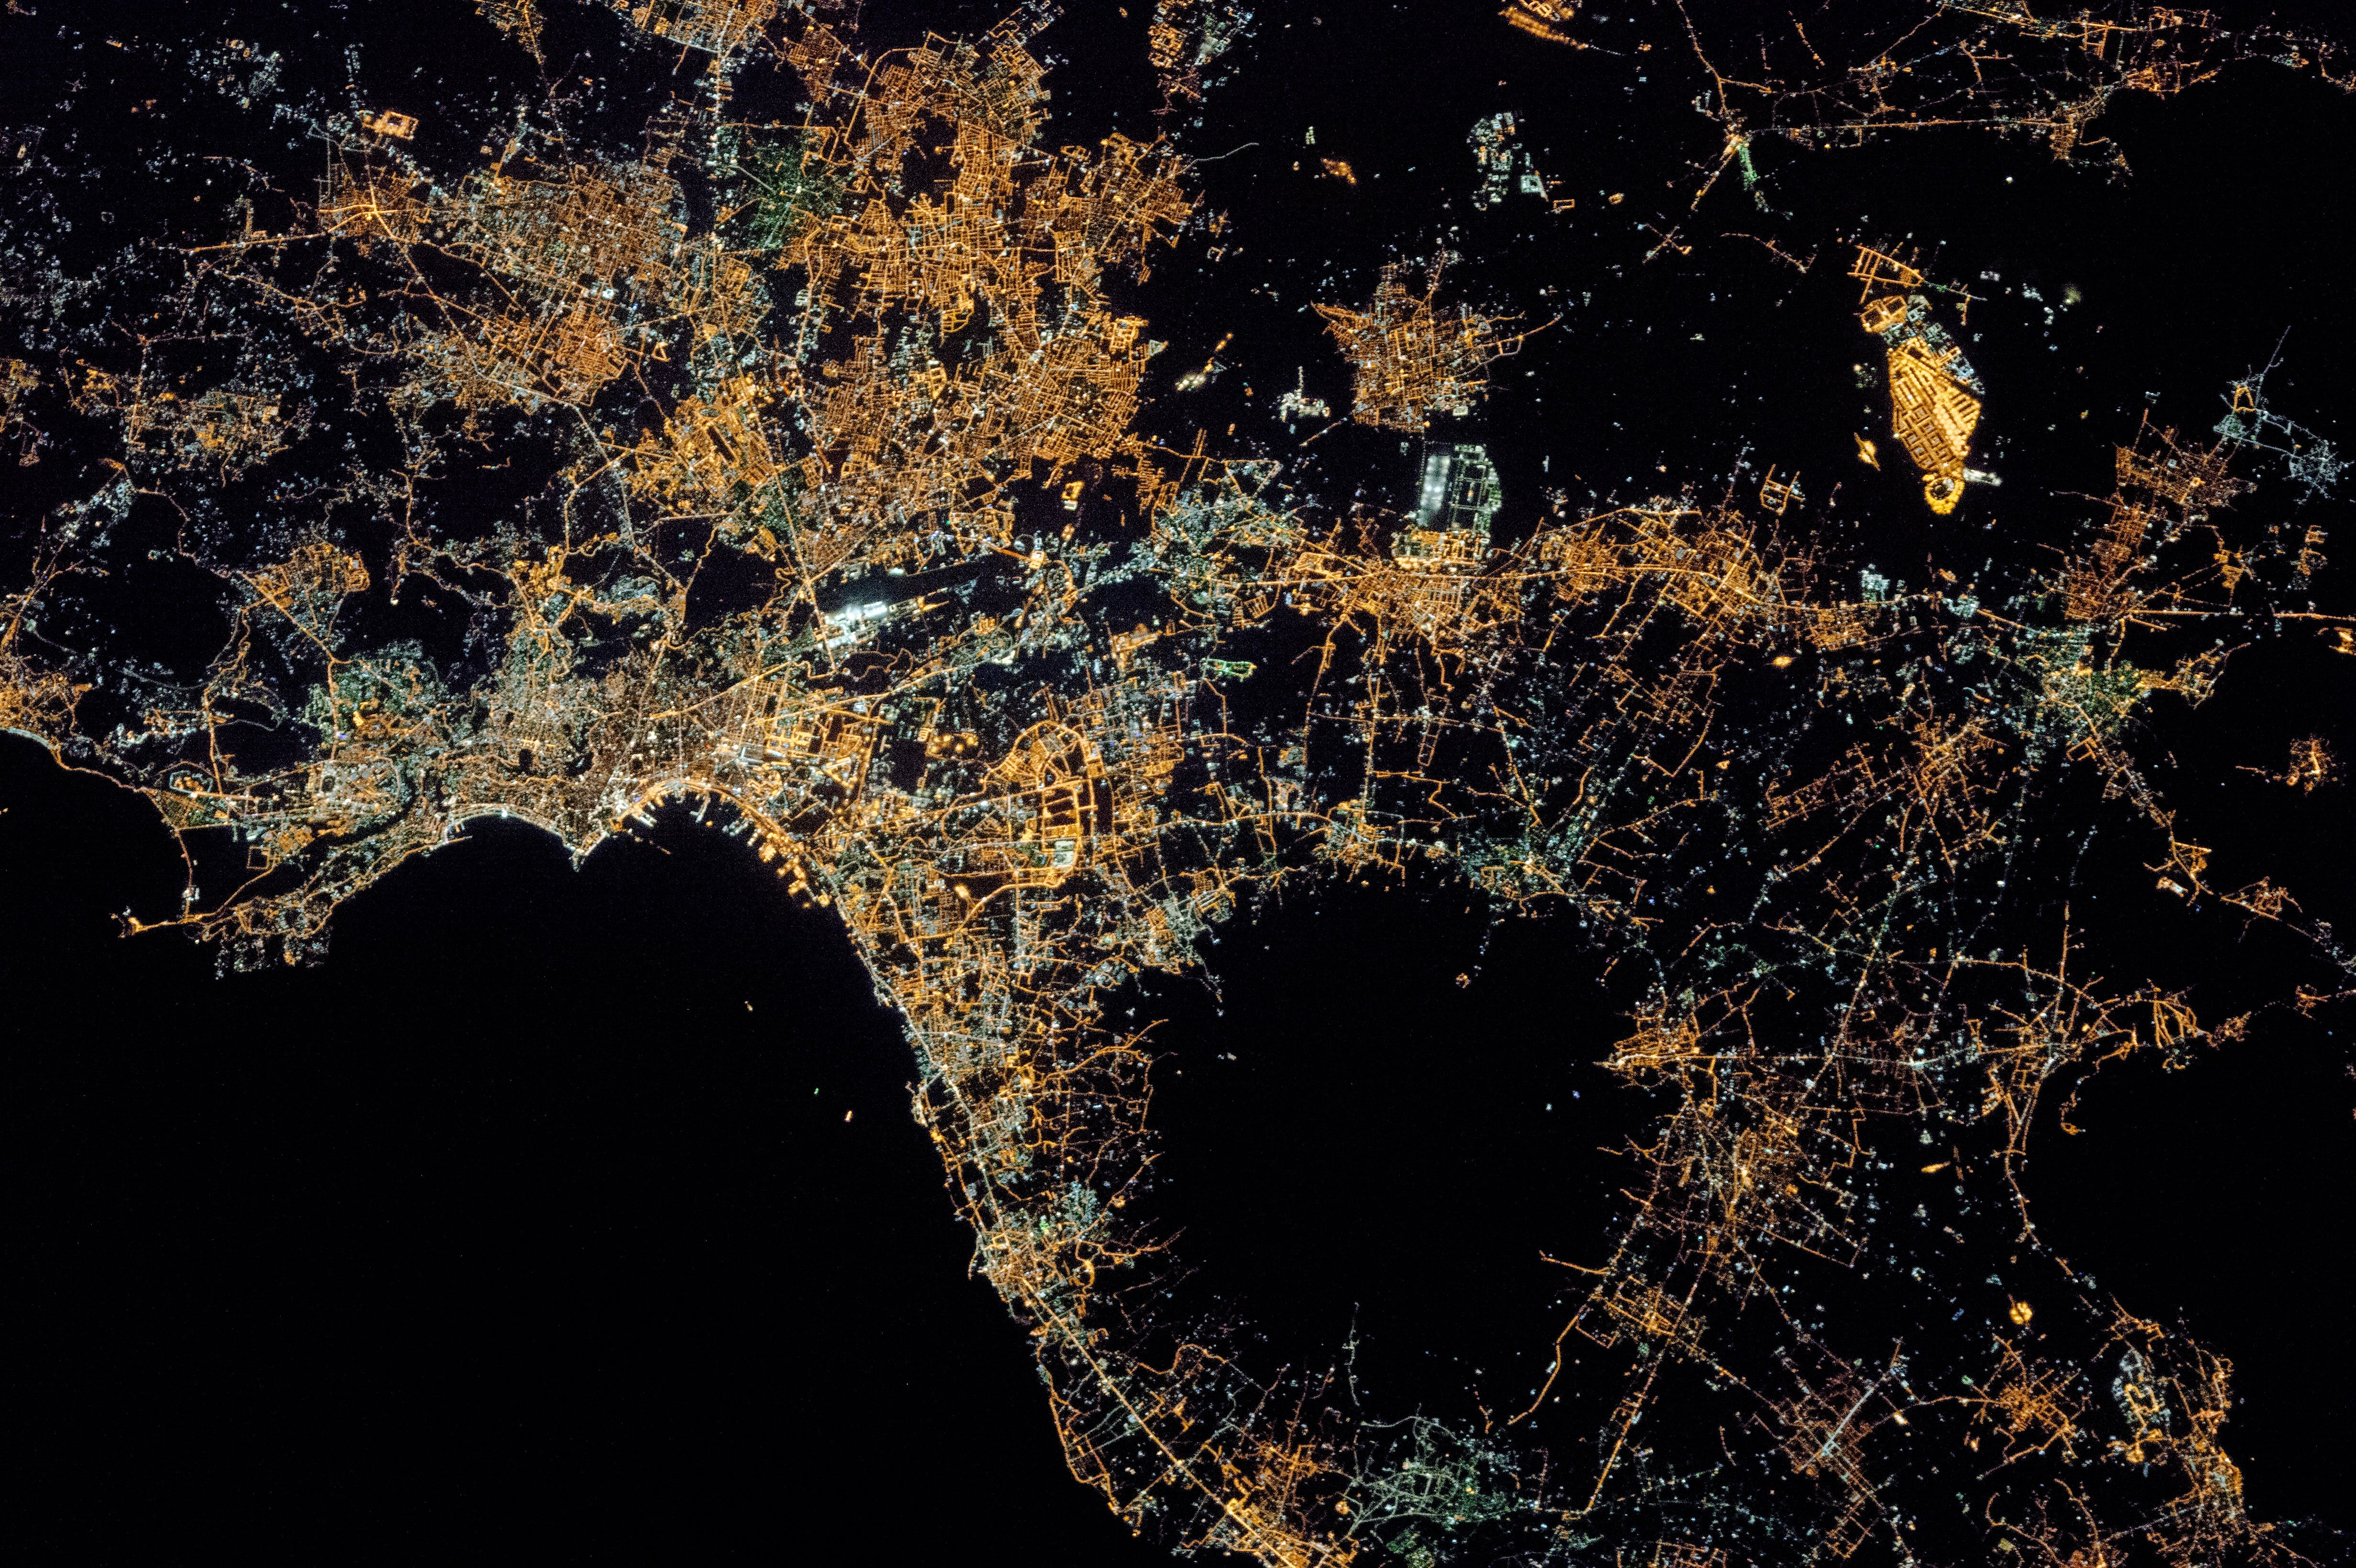 A view from space of the city of Naples sitting near Mount Vesuvius